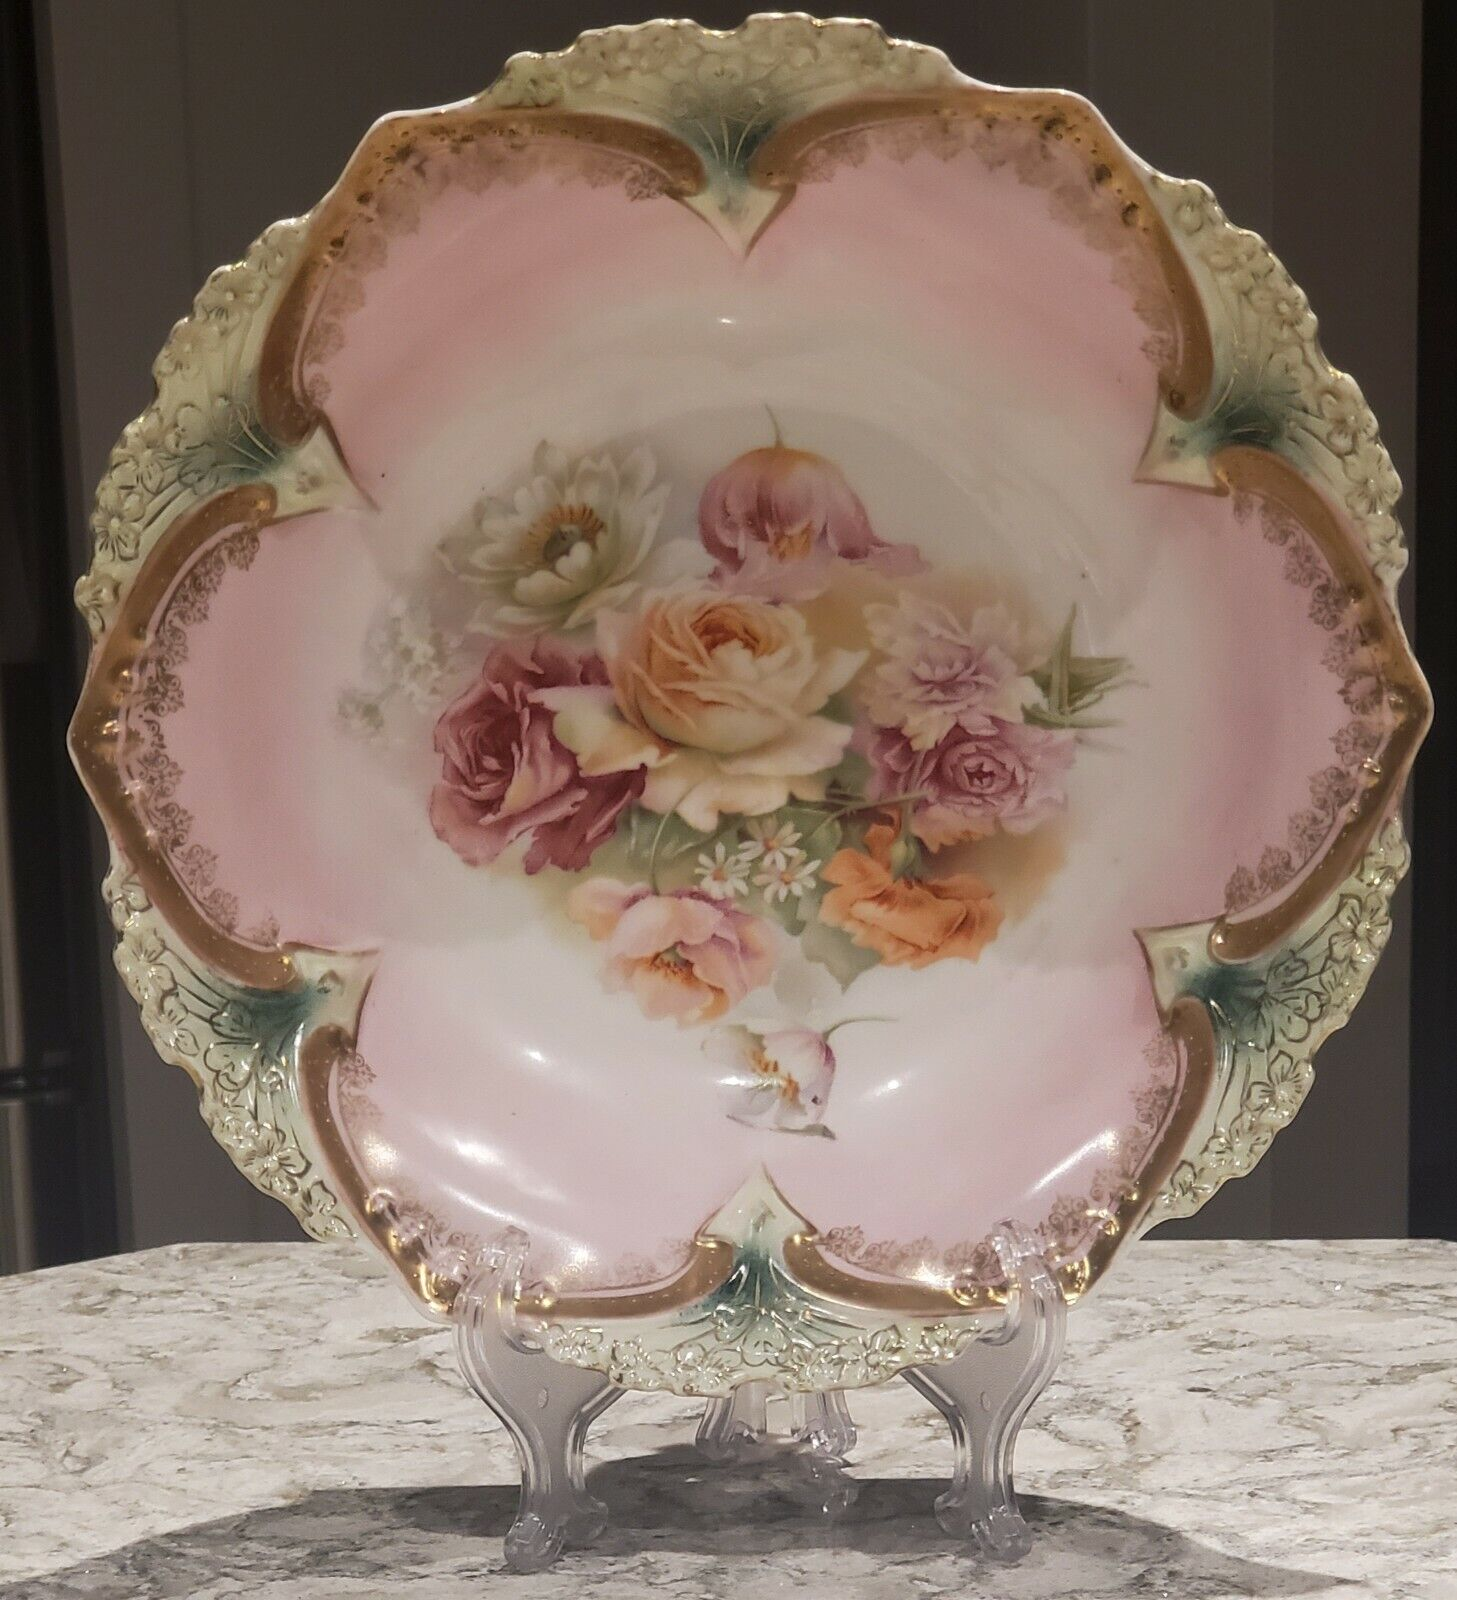 Antique R.S Prussia Bowl - Red Mark - Pink, Green Trim with Cabbage Roses - 1900